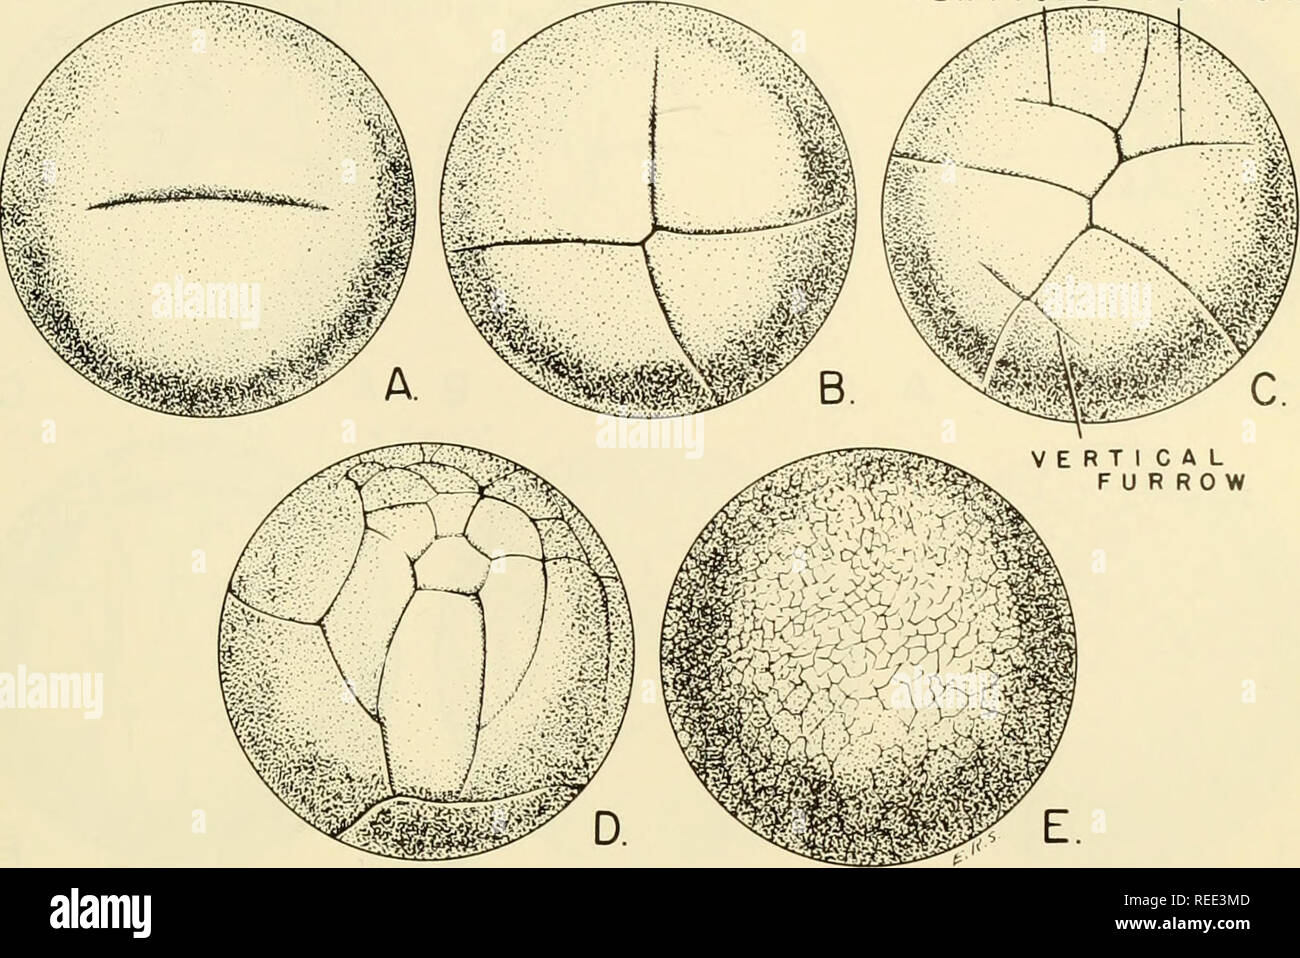 . Comparative embryology of the vertebrates; with 2057 drawings and photos. grouped as 380 illus. Vertebrates -- Embryology; Comparative embryology. TYPES OF CLEAVAGE 307 VERTICAL FURROW. Fig. 150. Cleavage in the egg of Lepidosiren paradoxa. (After Kerr, '09.) (A) Be- ginning of first cleavage, meridional in position. (B) Second cleavage planes, approxi- mately meridional in position. (C) Third cleavage planes vertical in position, demon- strating a typical meroblastic pattern. (D) Early biastula. (E) Late blastula. laden macromeres. The blastocoel is small in relation to the size of the egg  - Stock Image